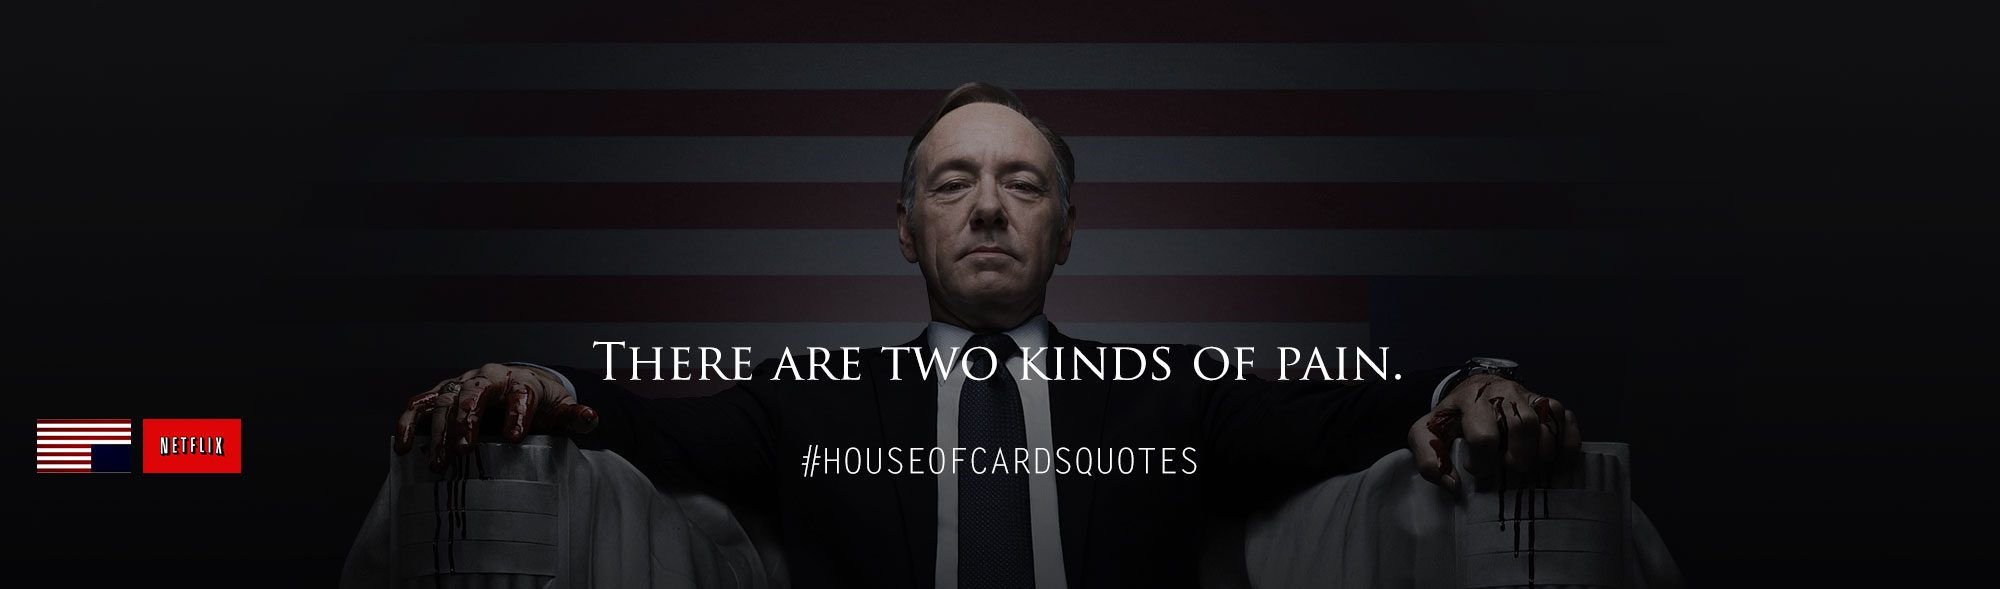 Download Funmozar House Of Cards Quote Wallpapers 2000x589 45